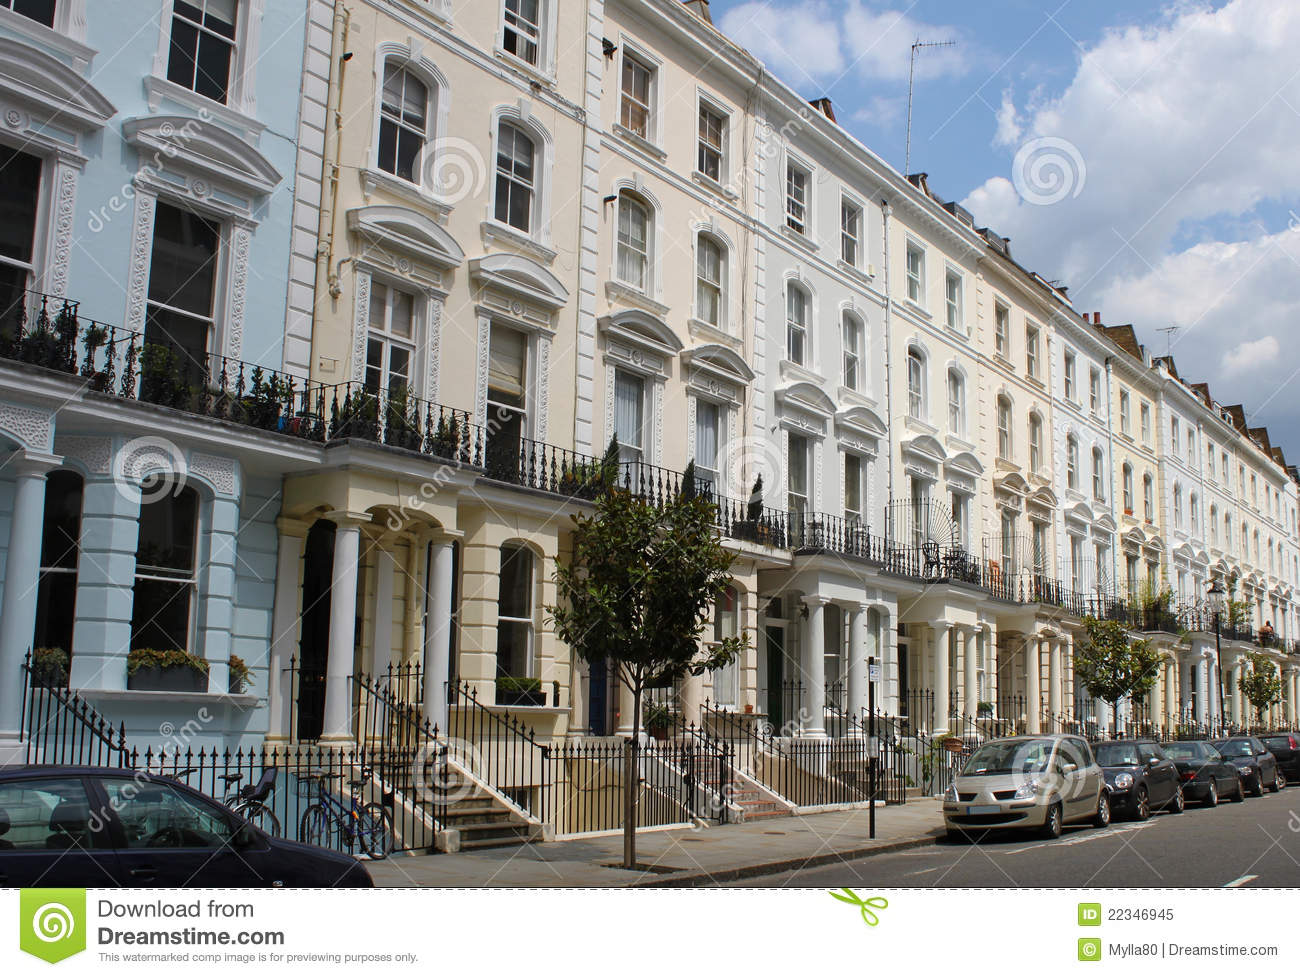 Notting hill houses royalty free stock photo image 22346945 for House notting hill